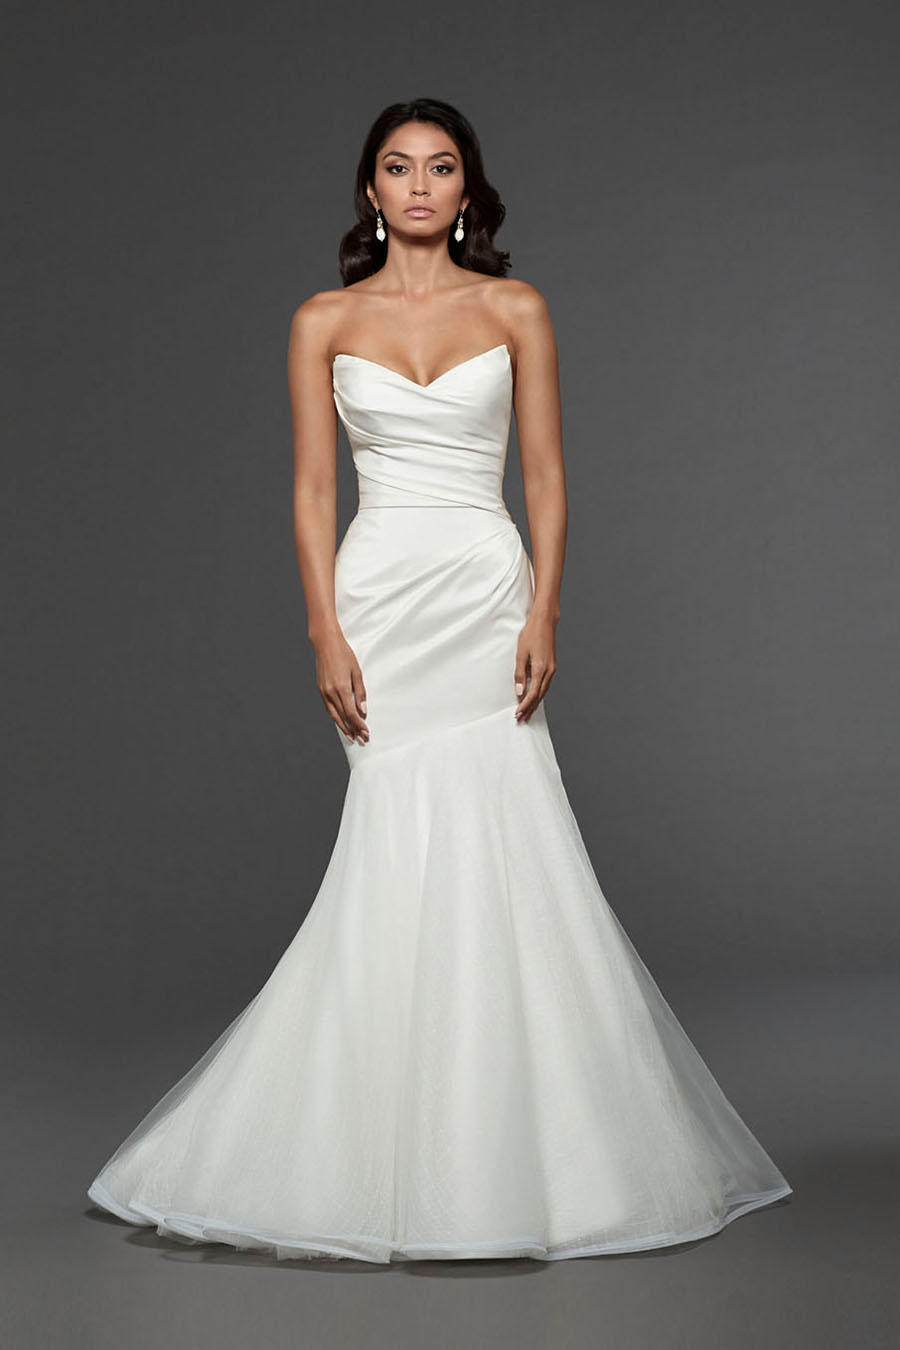 Nena by Matthew Christopher - Silk Taffeta and Tulle Mermaid Wedding Dress